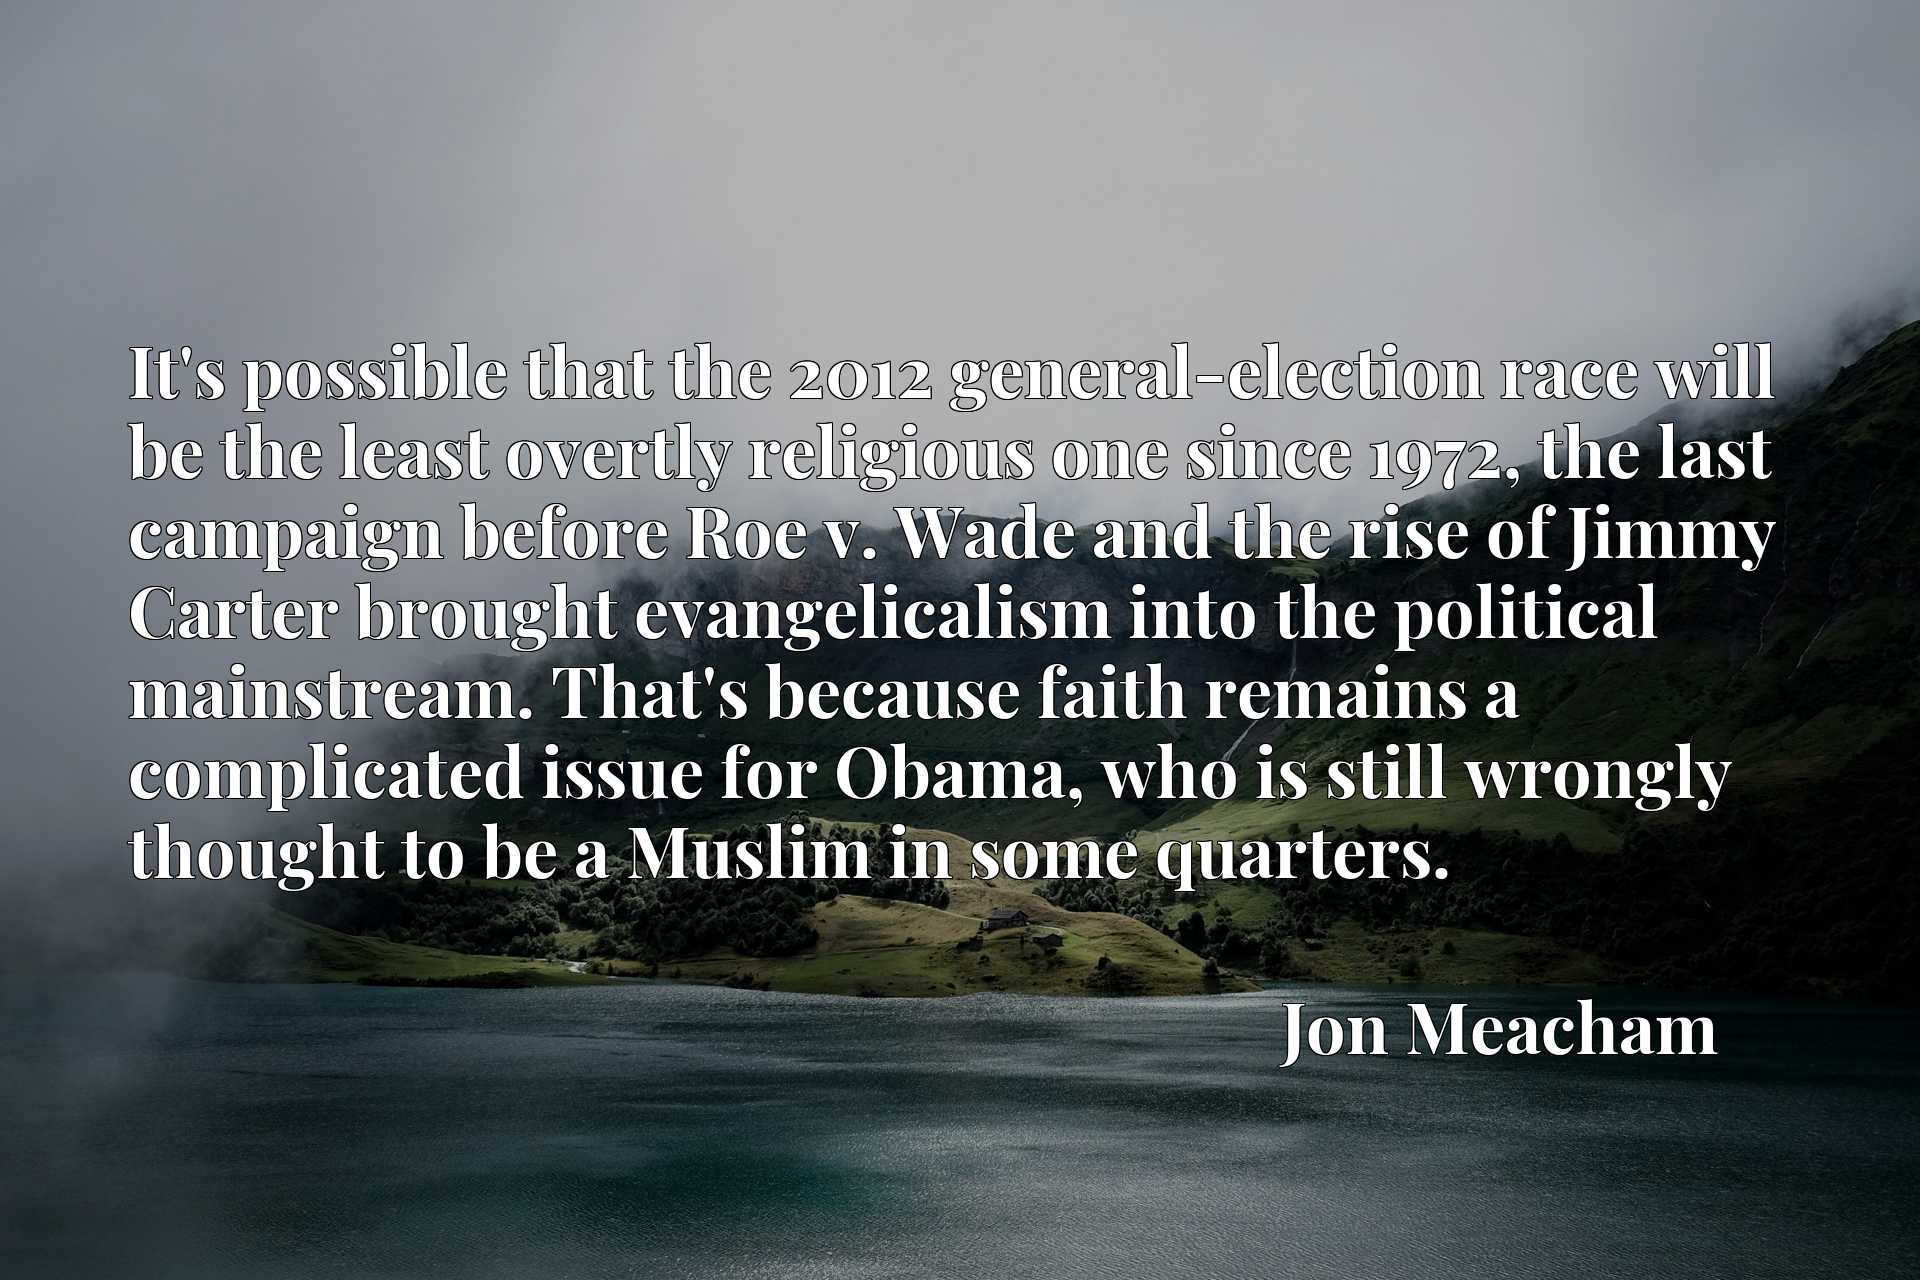 It's possible that the 2012 general-election race will be the least overtly religious one since 1972, the last campaign before Roe v. Wade and the rise of Jimmy Carter brought evangelicalism into the political mainstream. That's because faith remains a complicated issue for Obama, who is still wrongly thought to be a Muslim in some quarters.